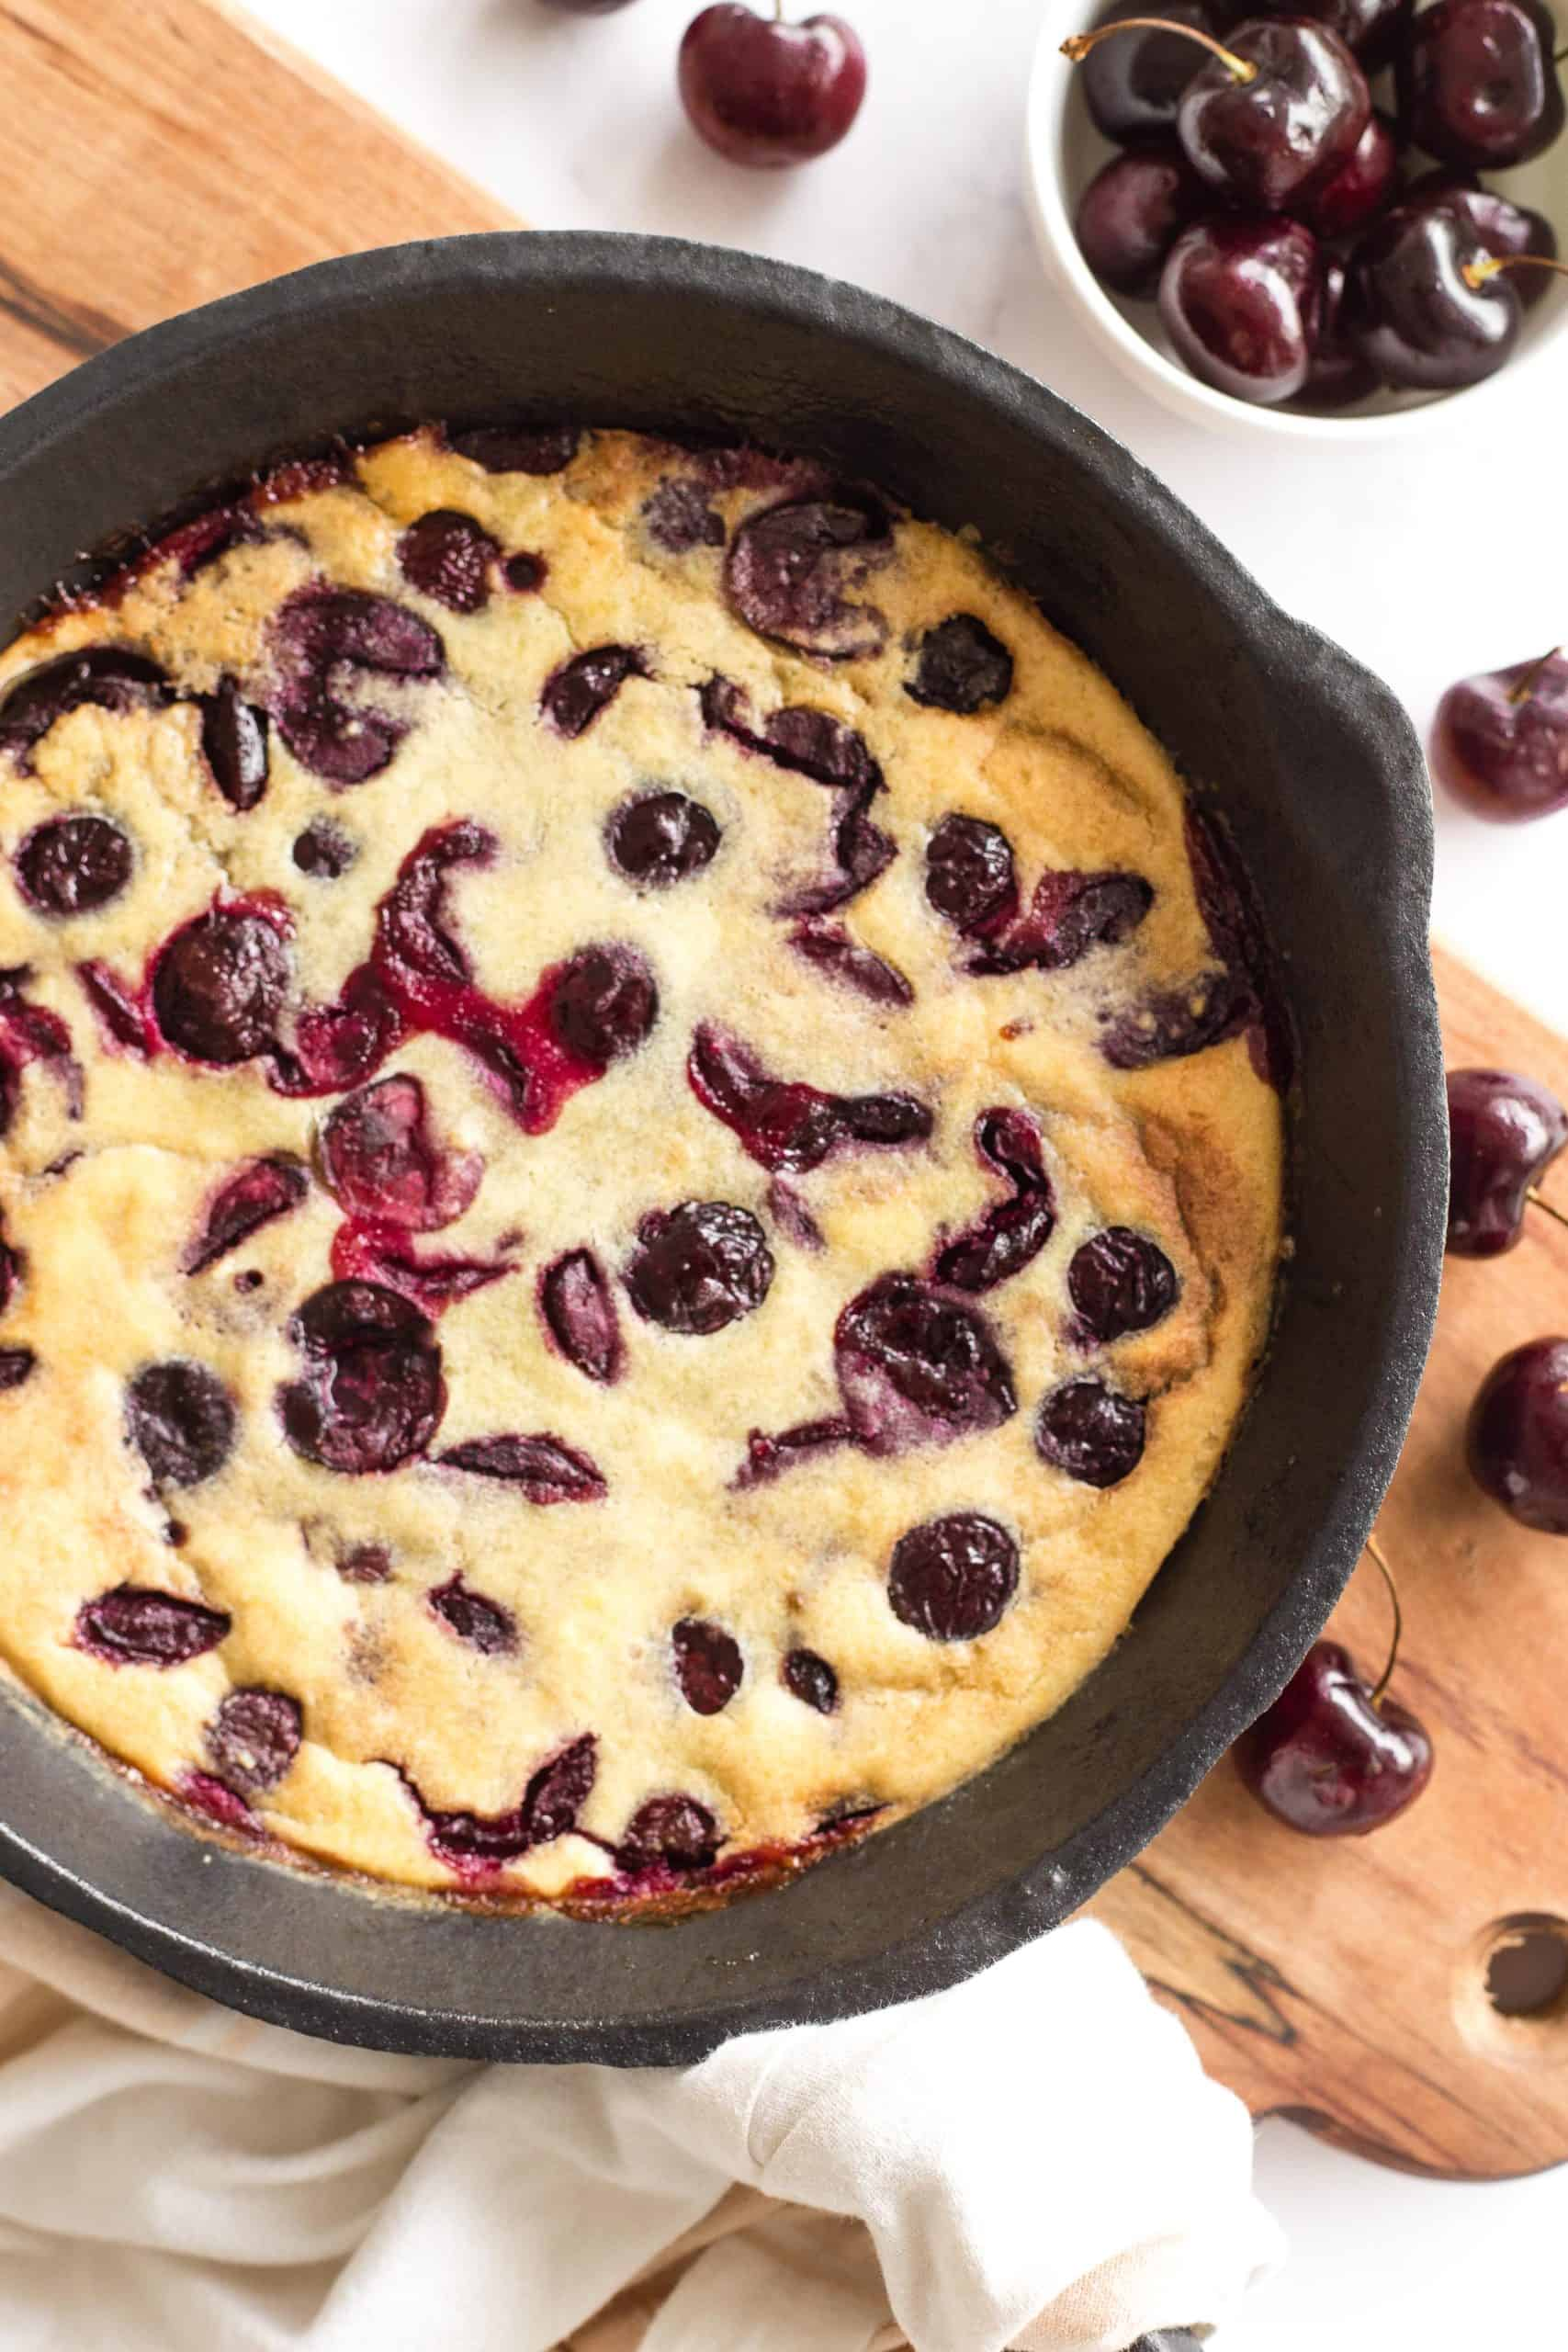 Clafoutis in skillet on a wooden board.